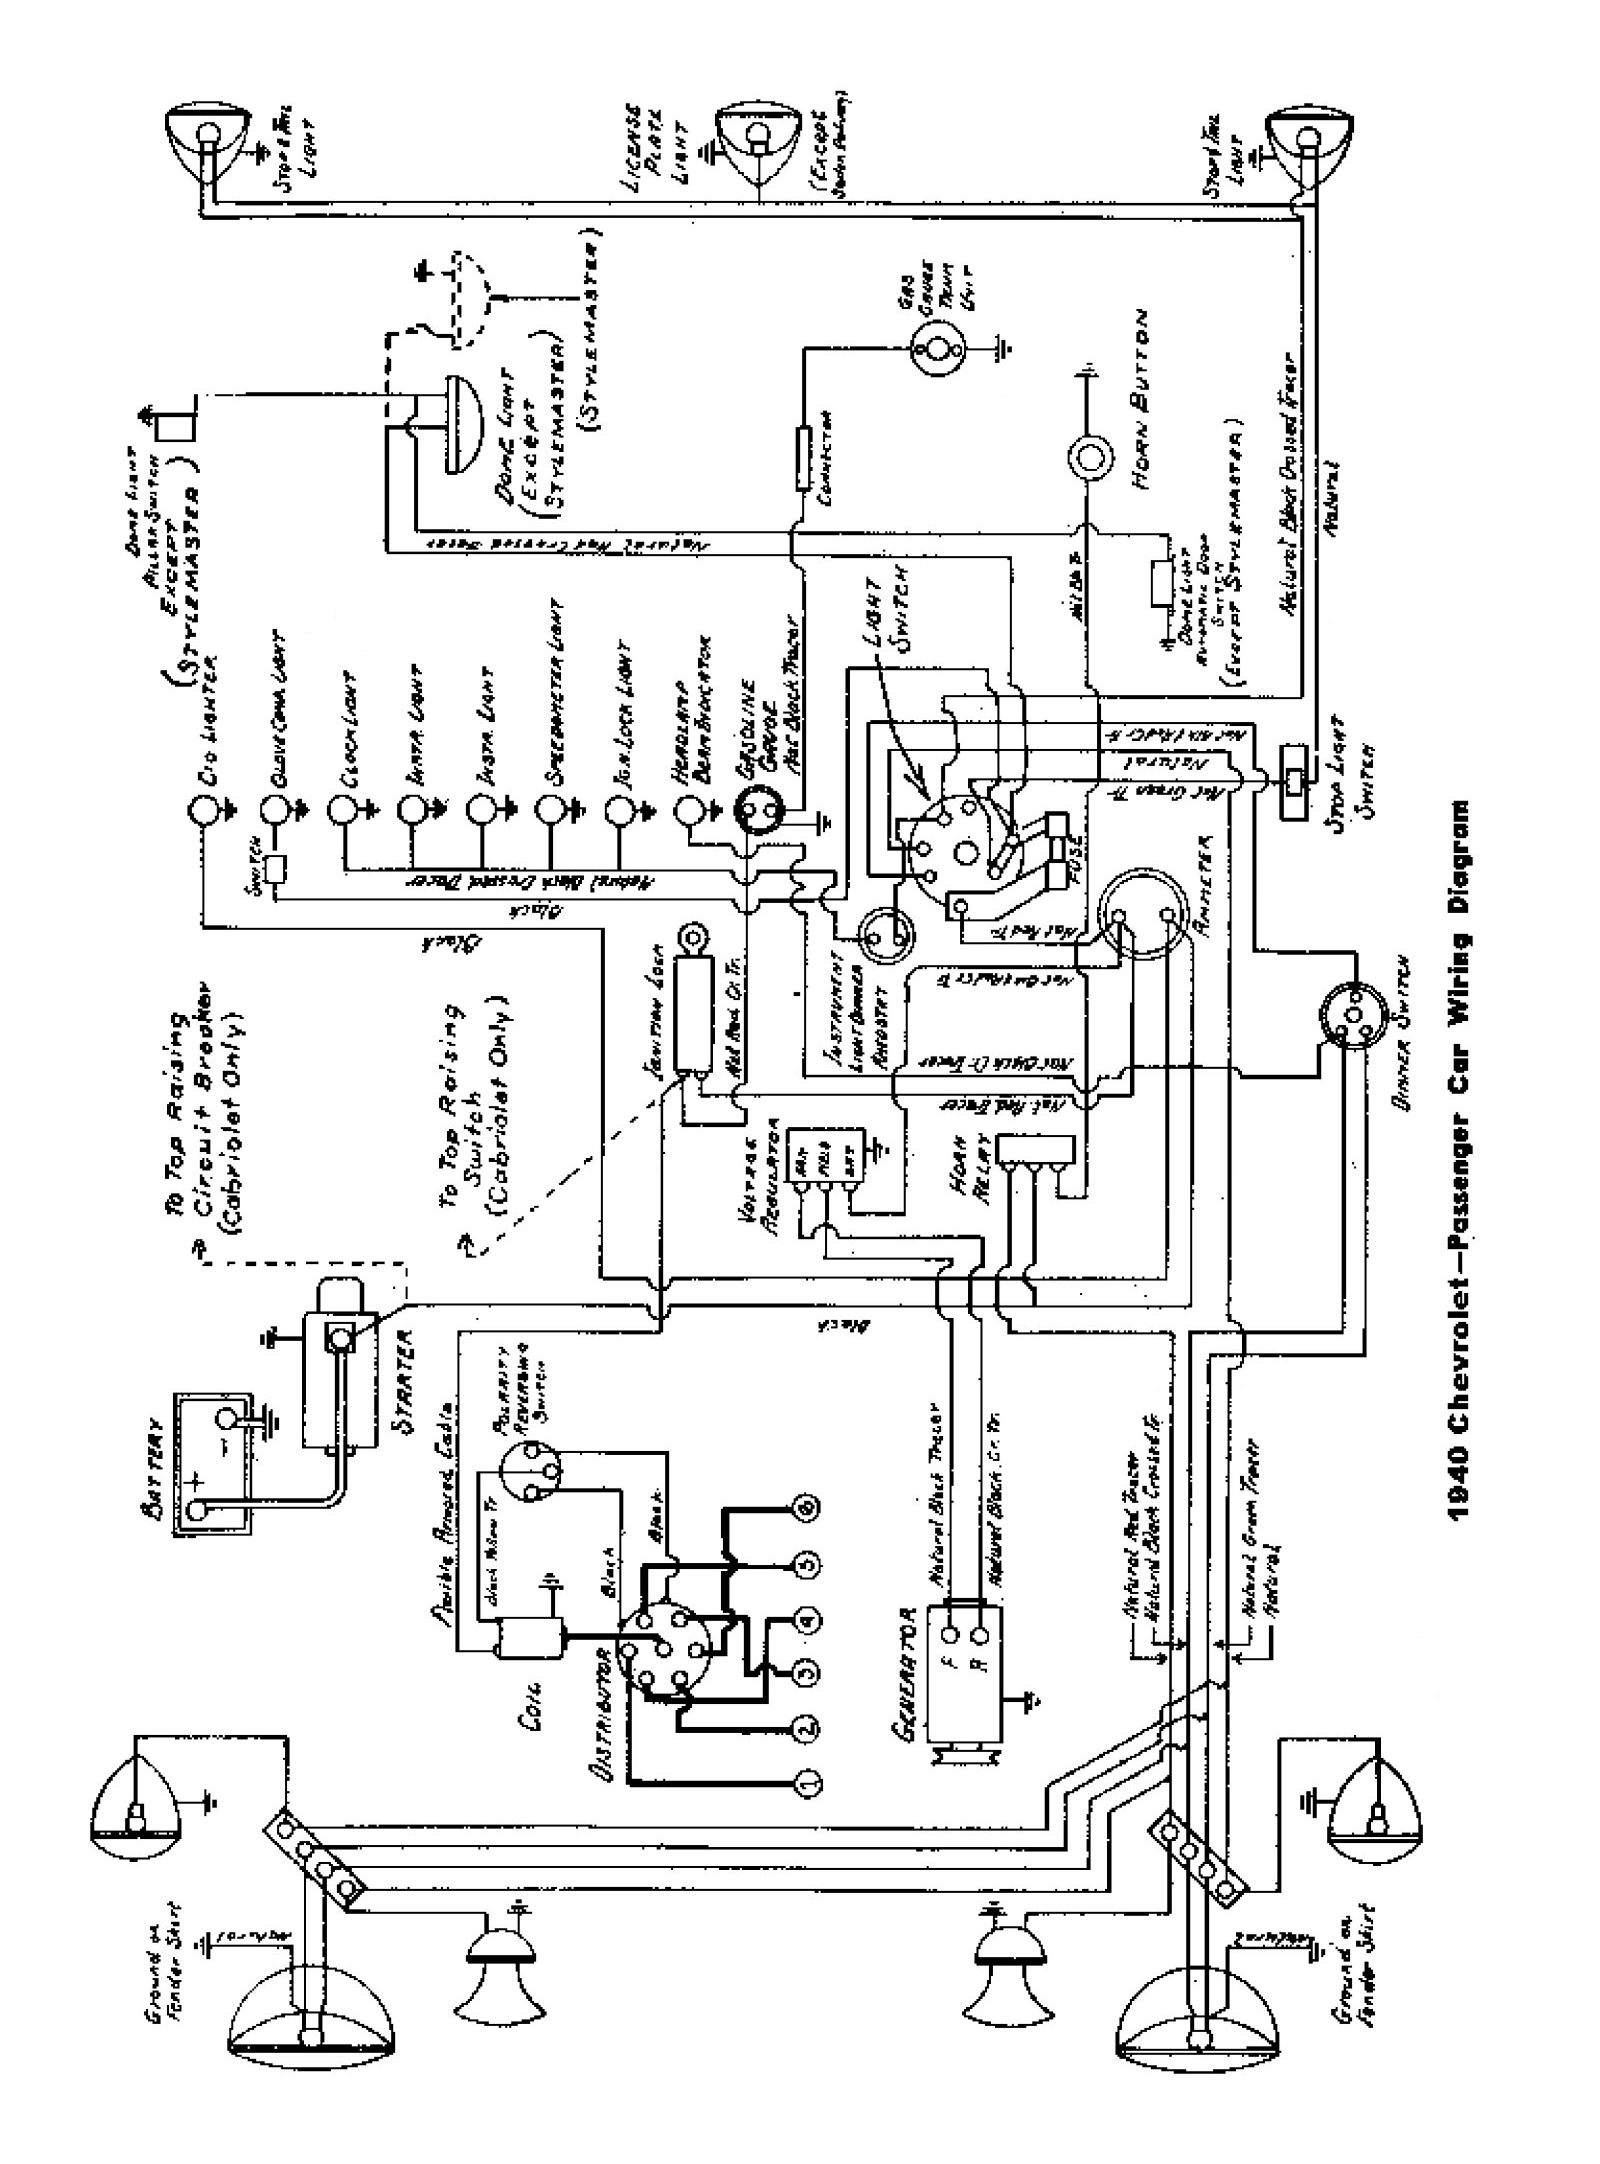 40car chevy wiring diagrams painless wiring harness 1953 chevy truck at bayanpartner.co